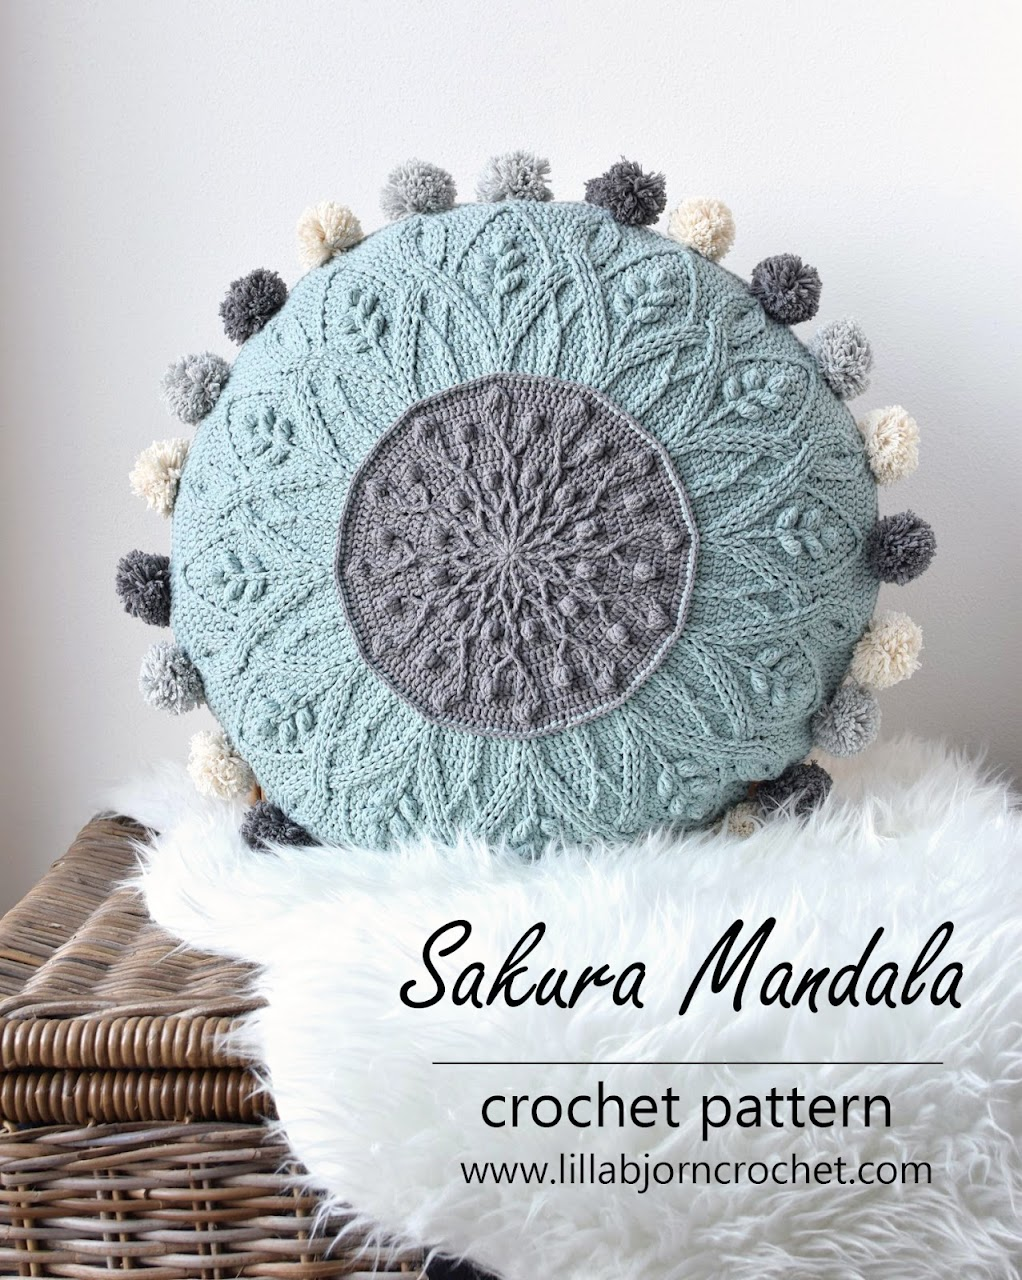 Sakura Cabled Mandala Pillow_crochet pattern by www.lillabjorncrochet.com